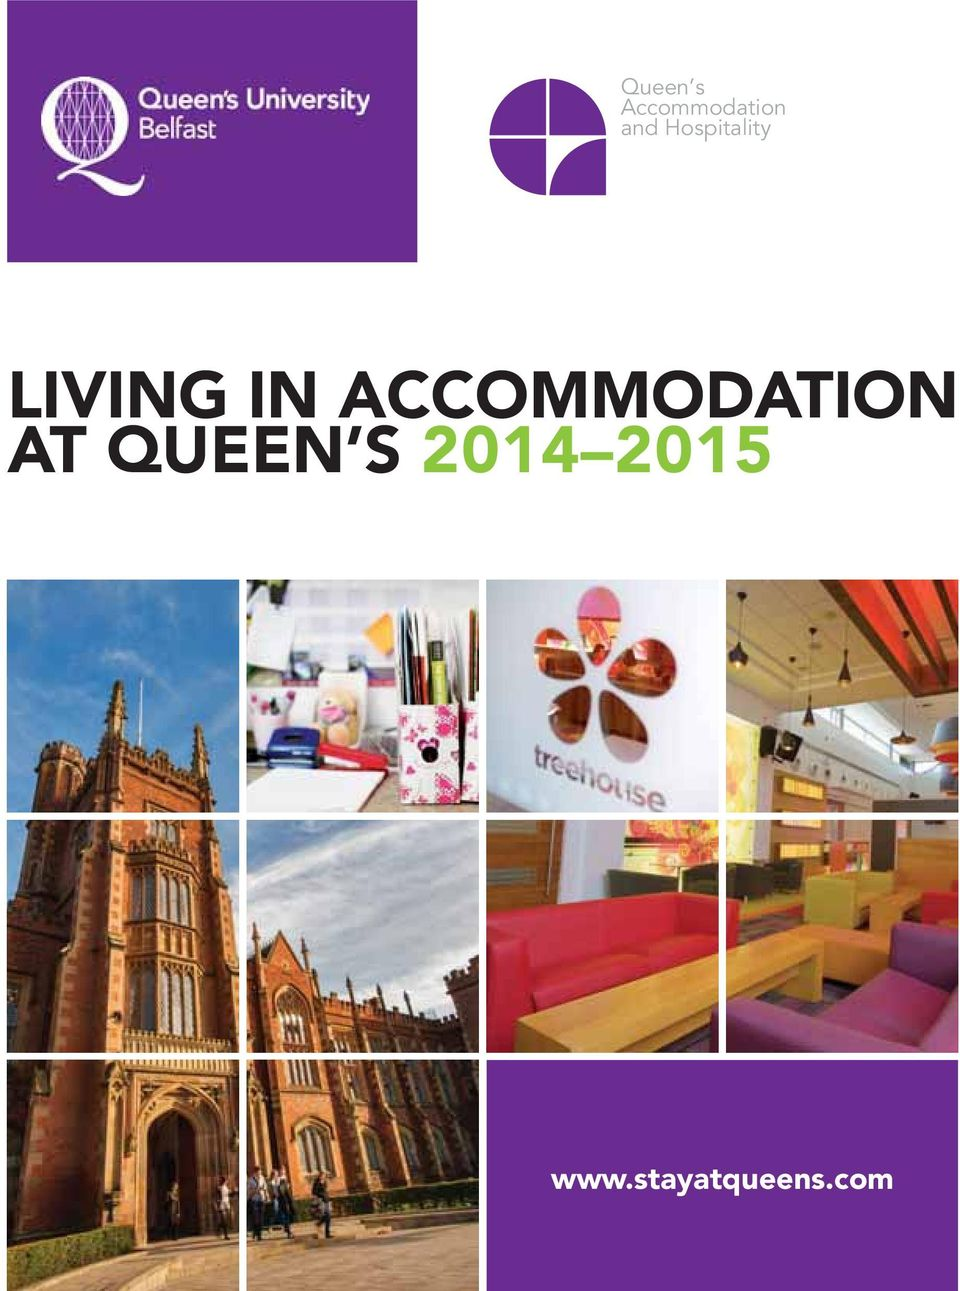 ACCOMMODATION AT QUEEN S